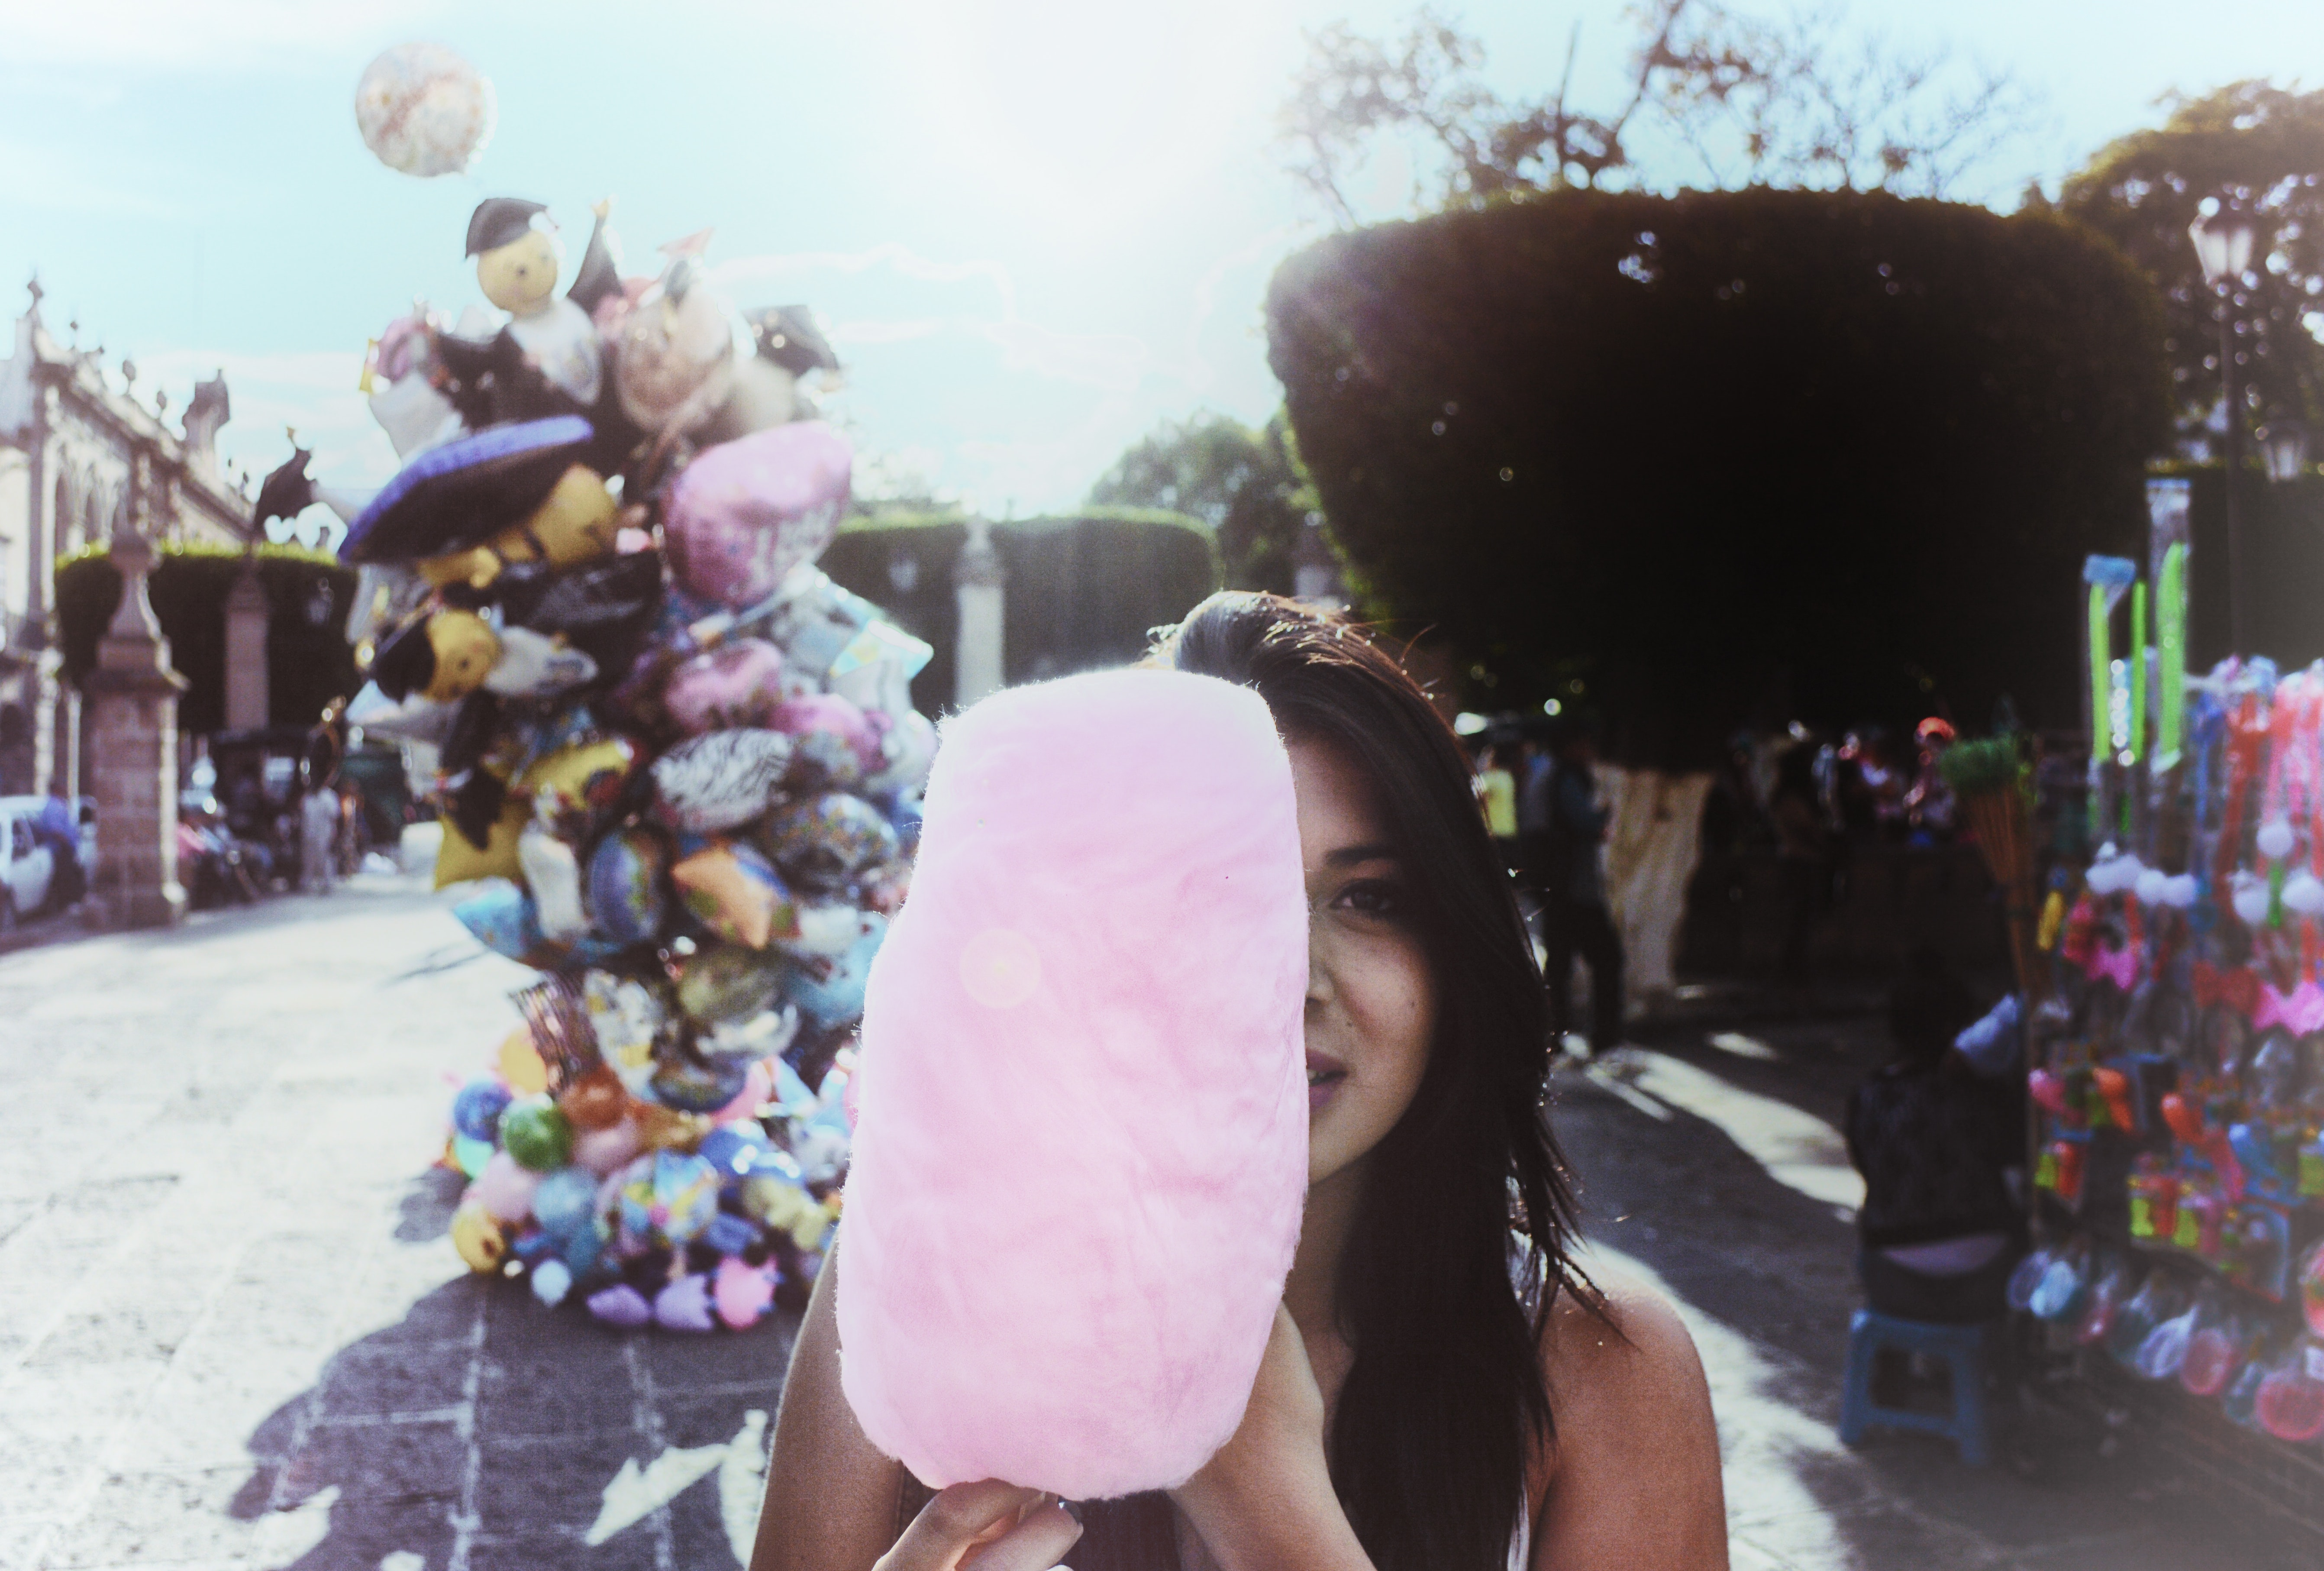 Woman Holding Cotton Candy With Balloons in Background, Happiness, Young, Woman, Shadow, HQ Photo